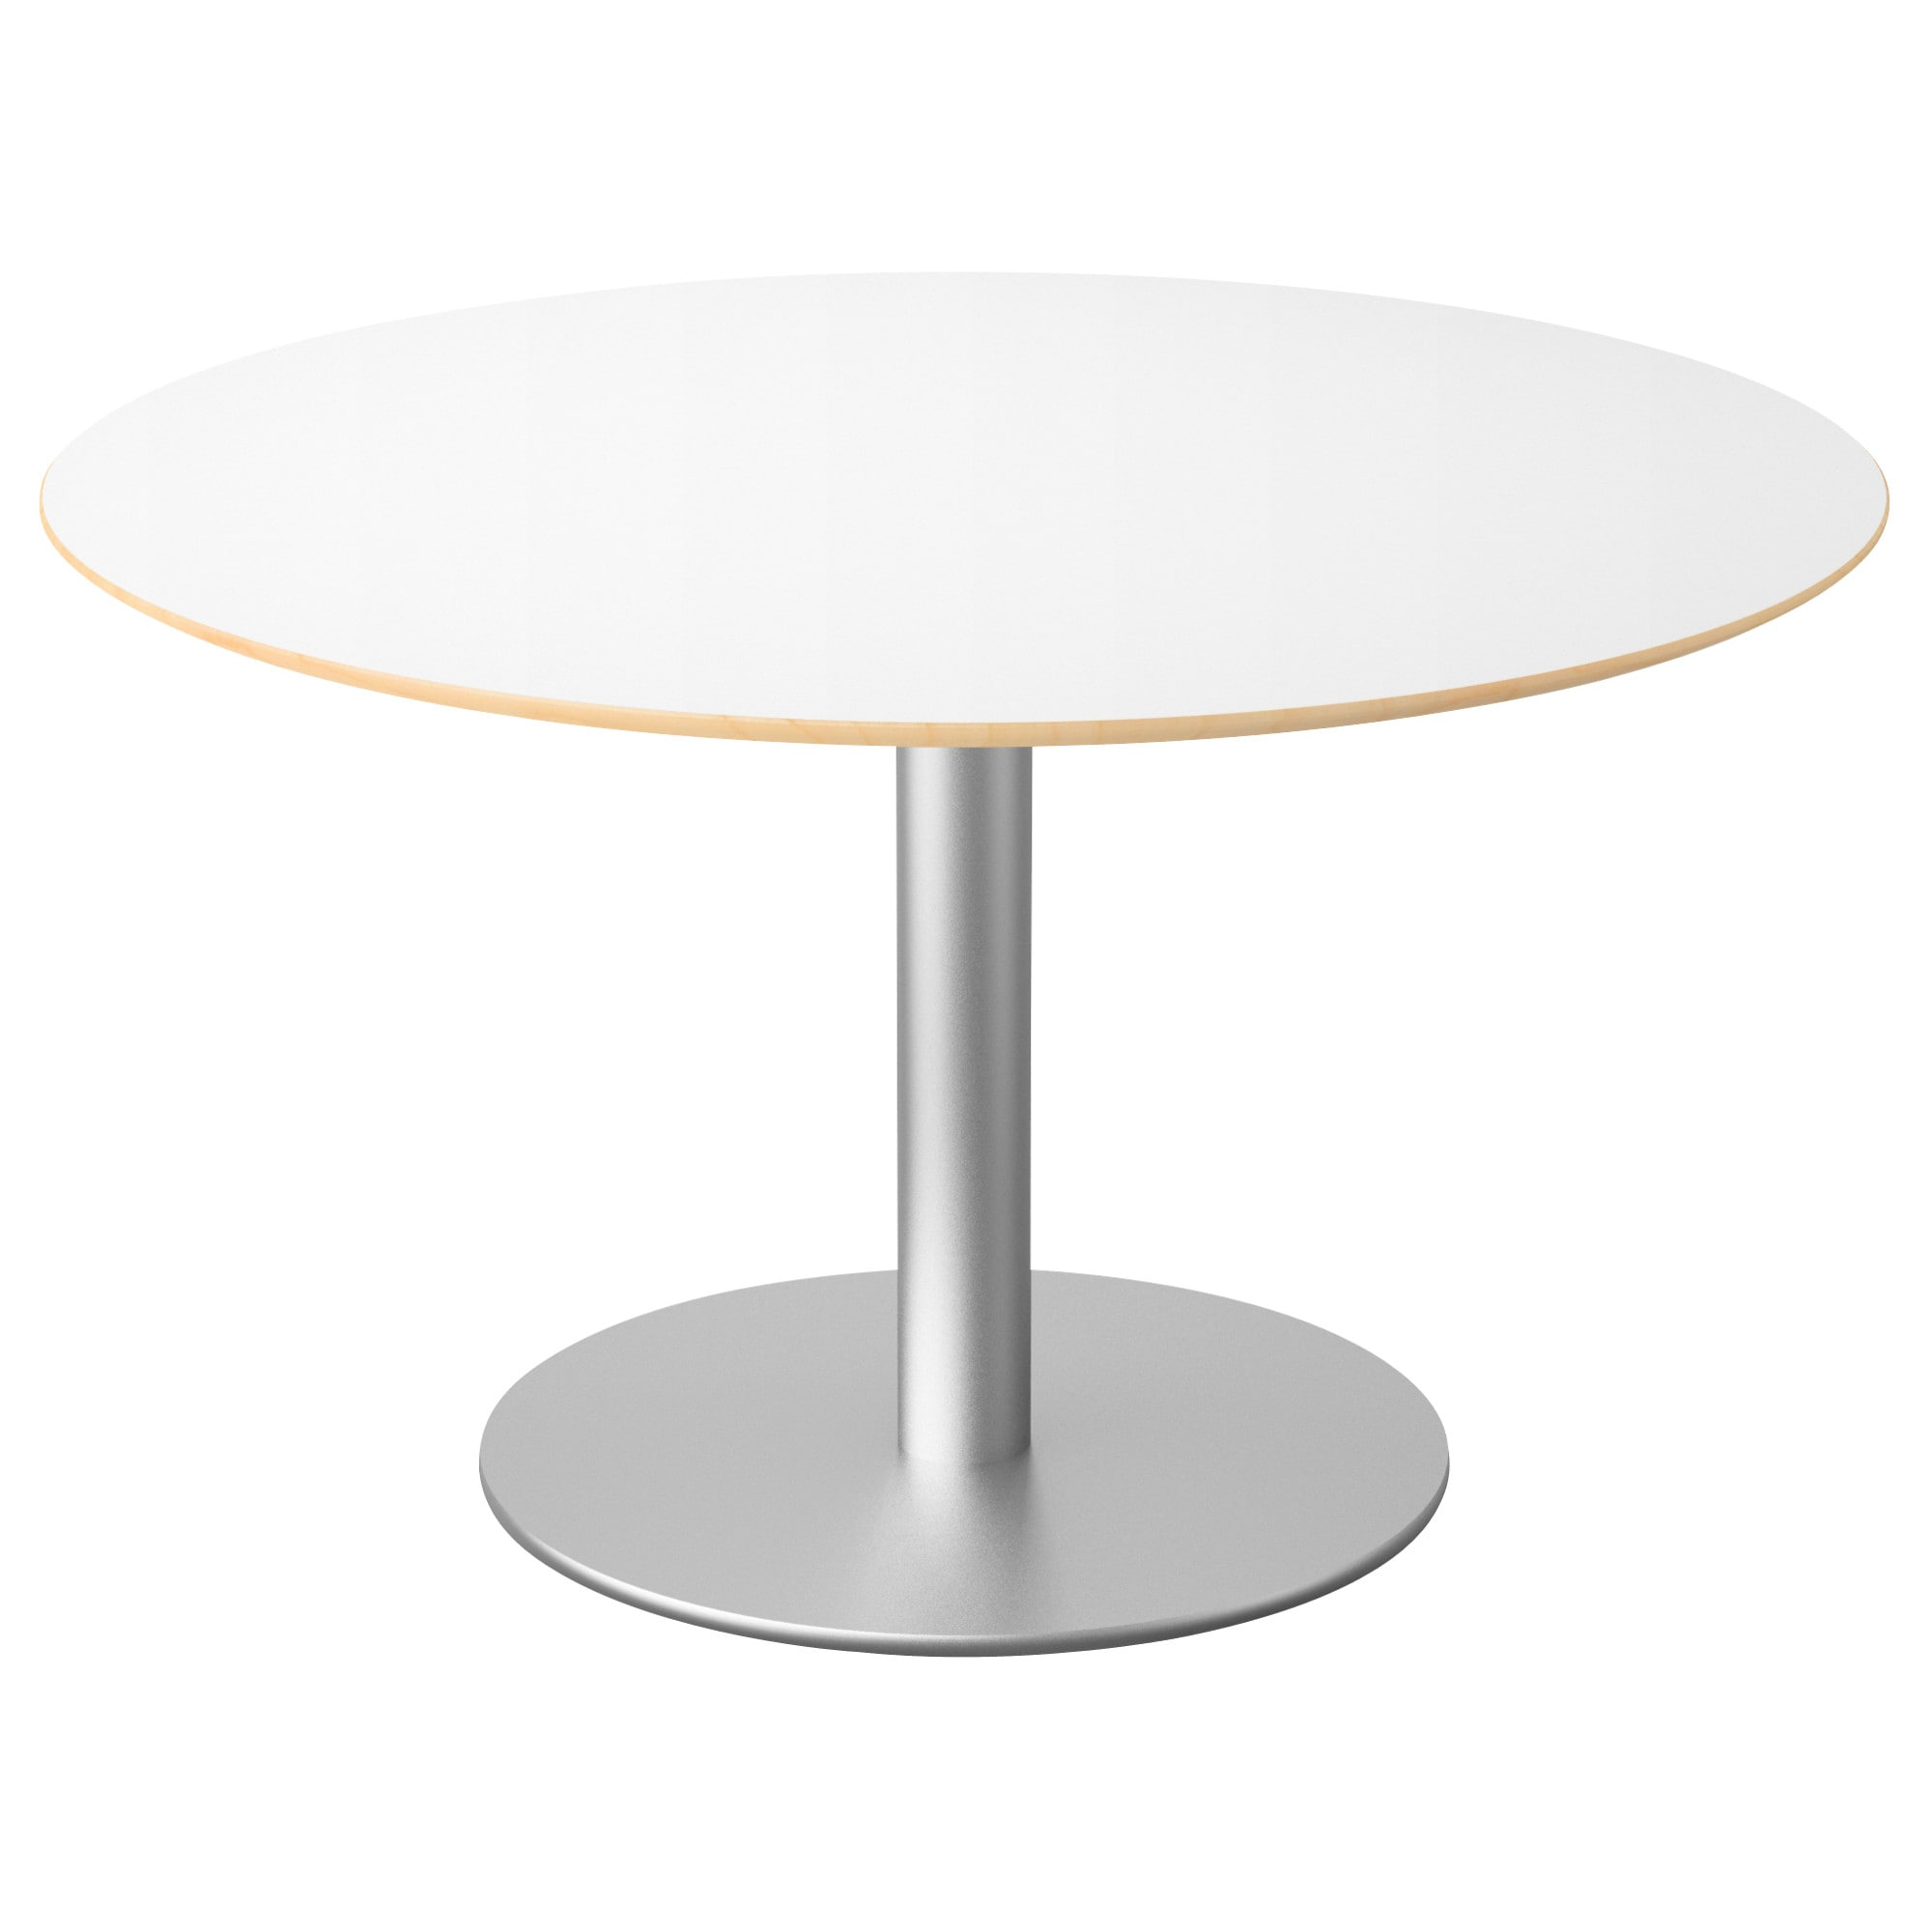 table ronde 8 personnes ikea maison design